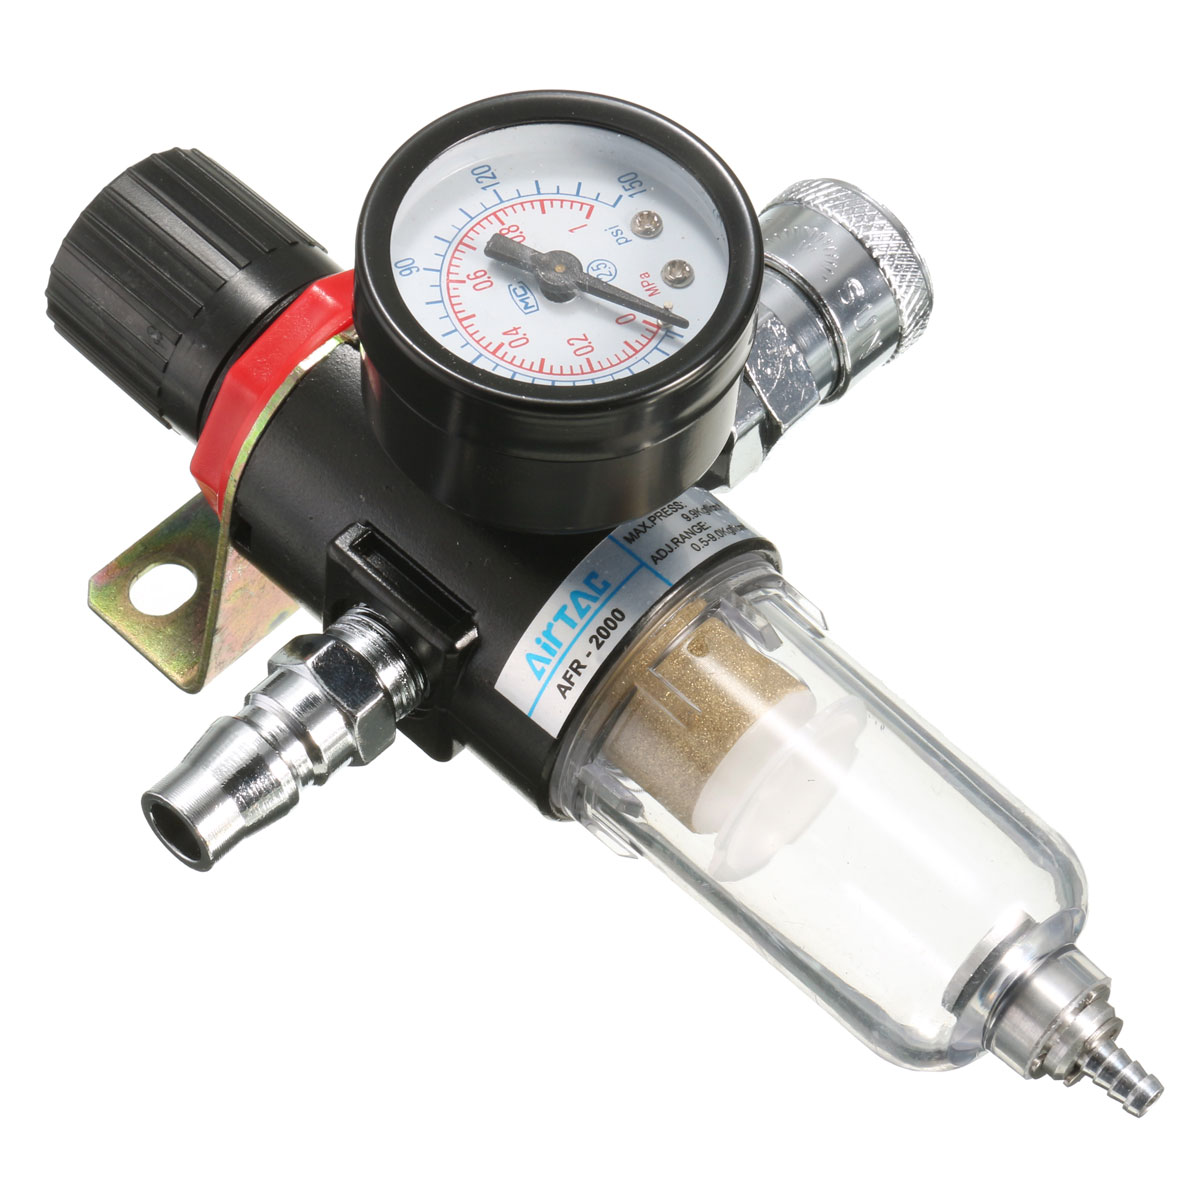 AFR-2000 1/4' Air Compressor Filter Water Separator Trap Tools Kit With Regulator Gauge